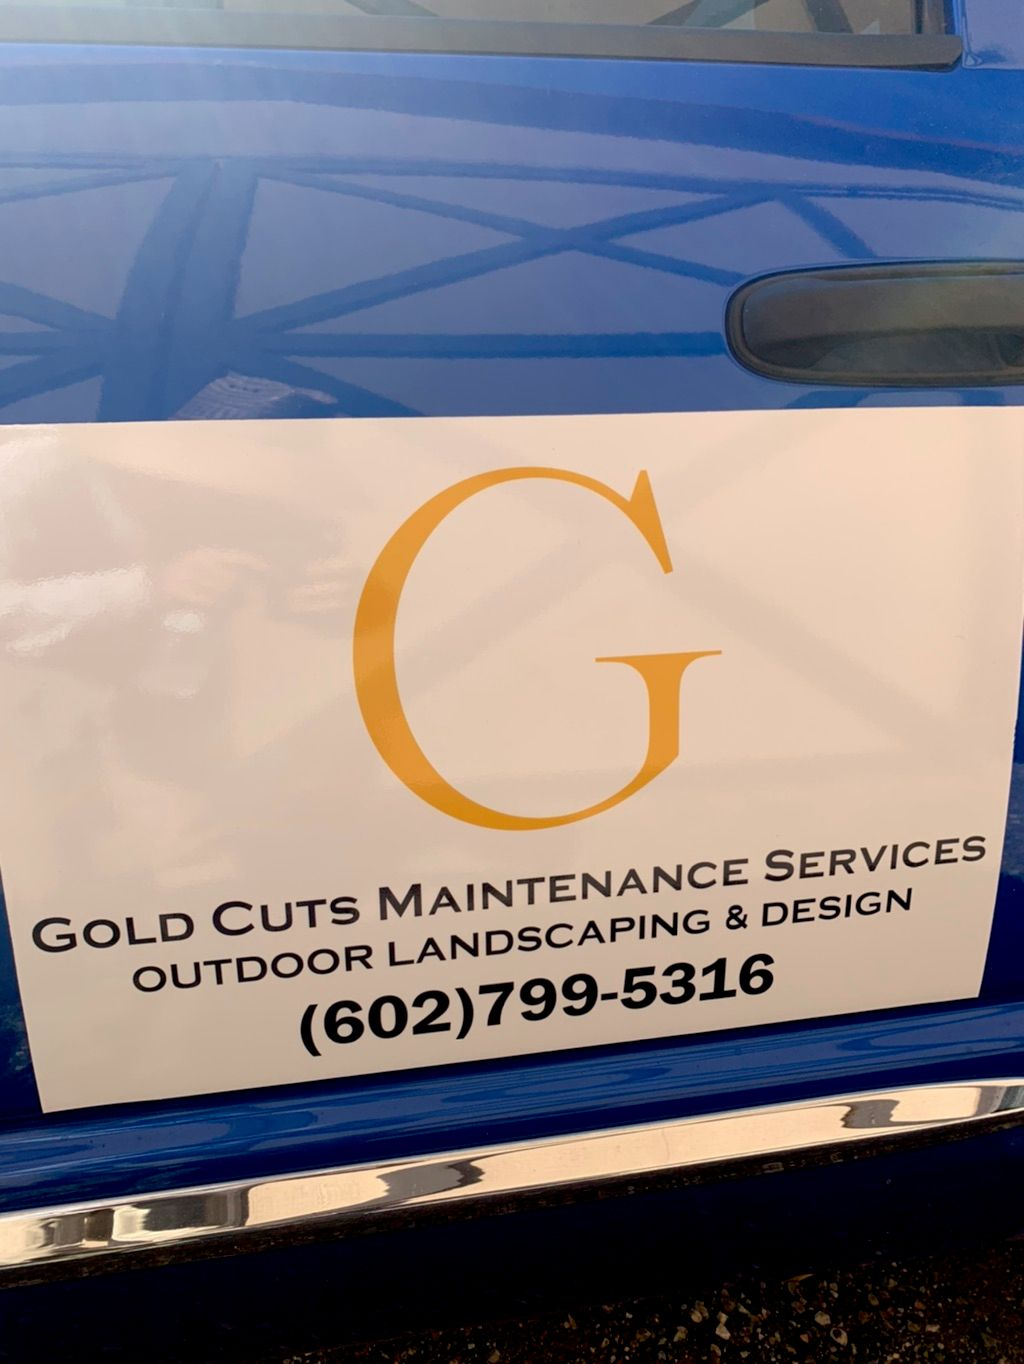 Gold cuts maintenance services